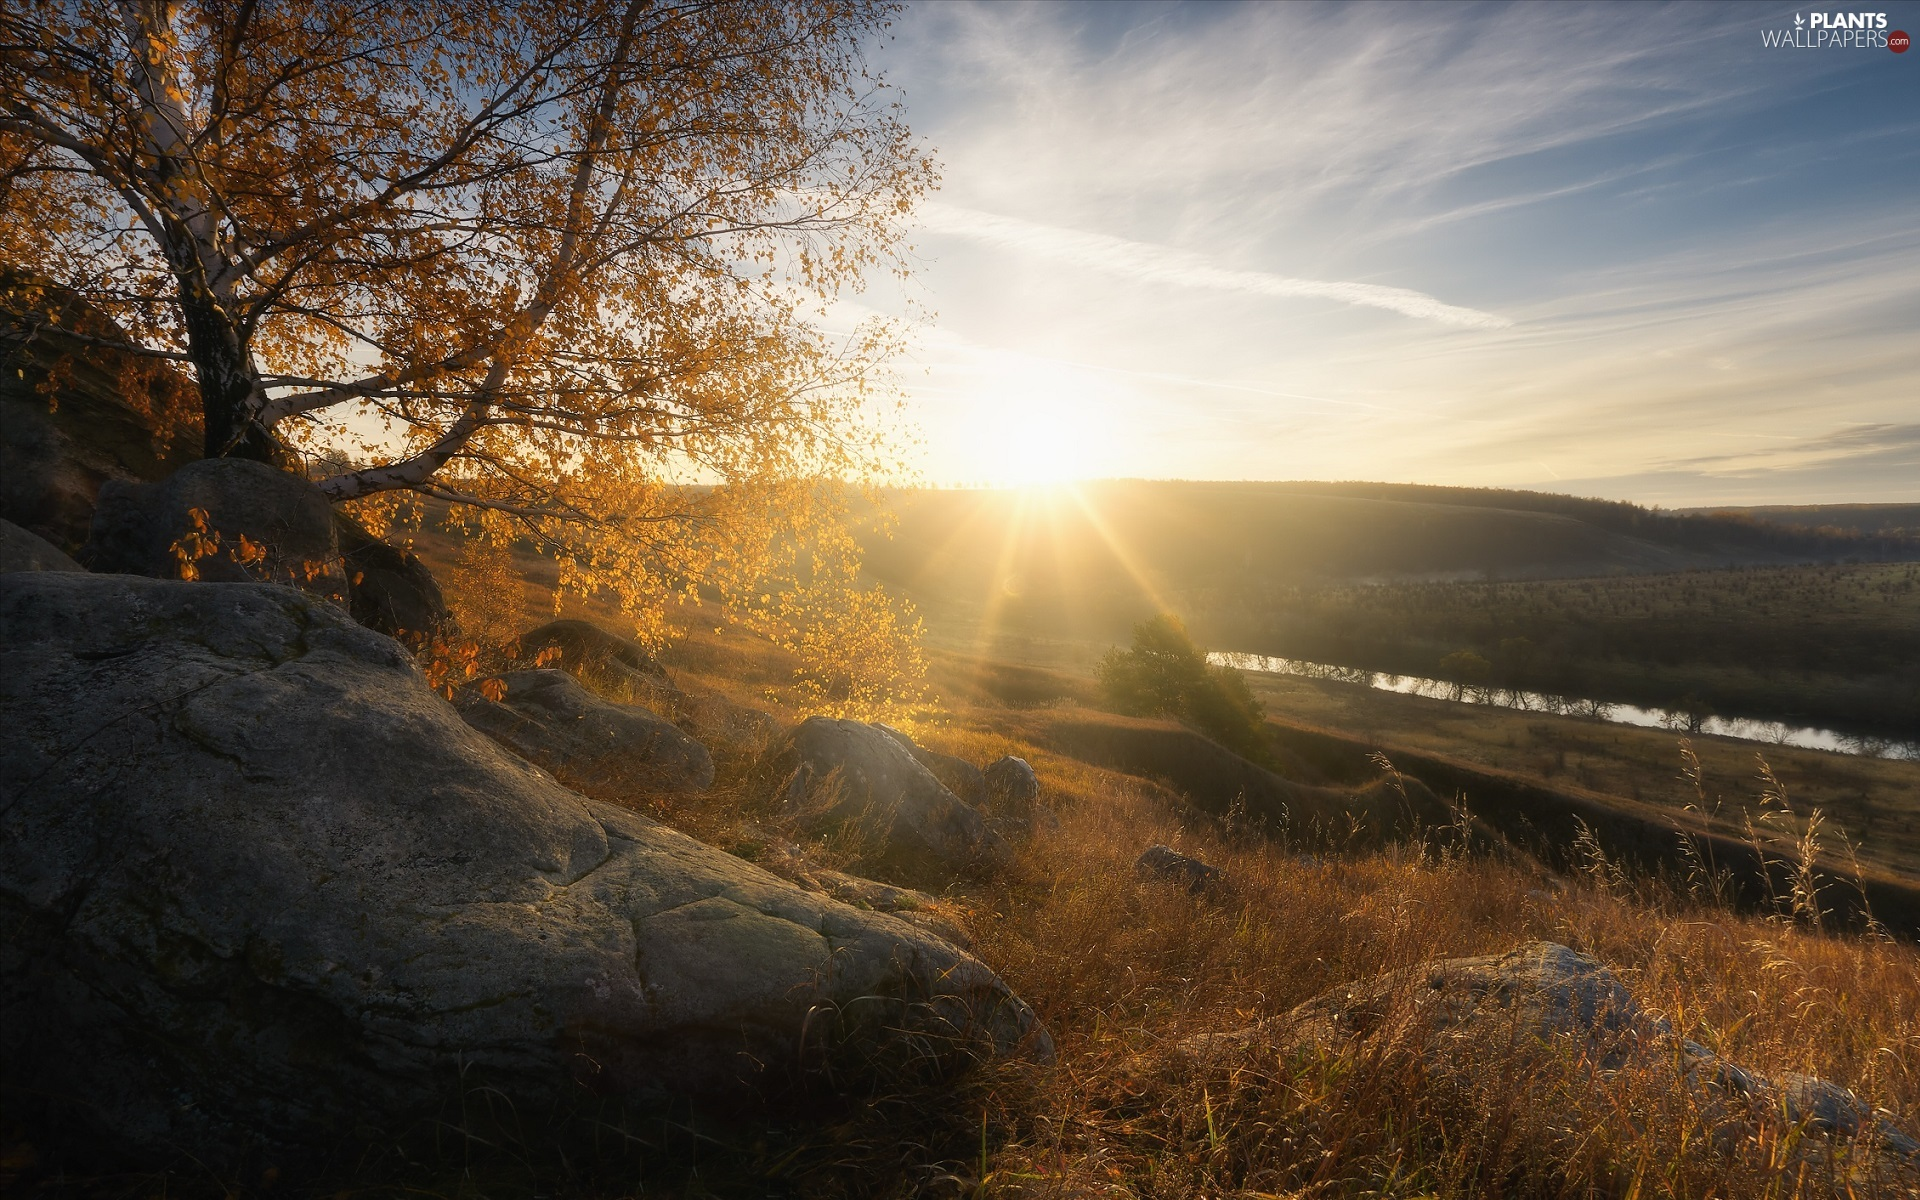 trees, rays of the Sun, Stones, The Hills, autumn, birch-tree, River